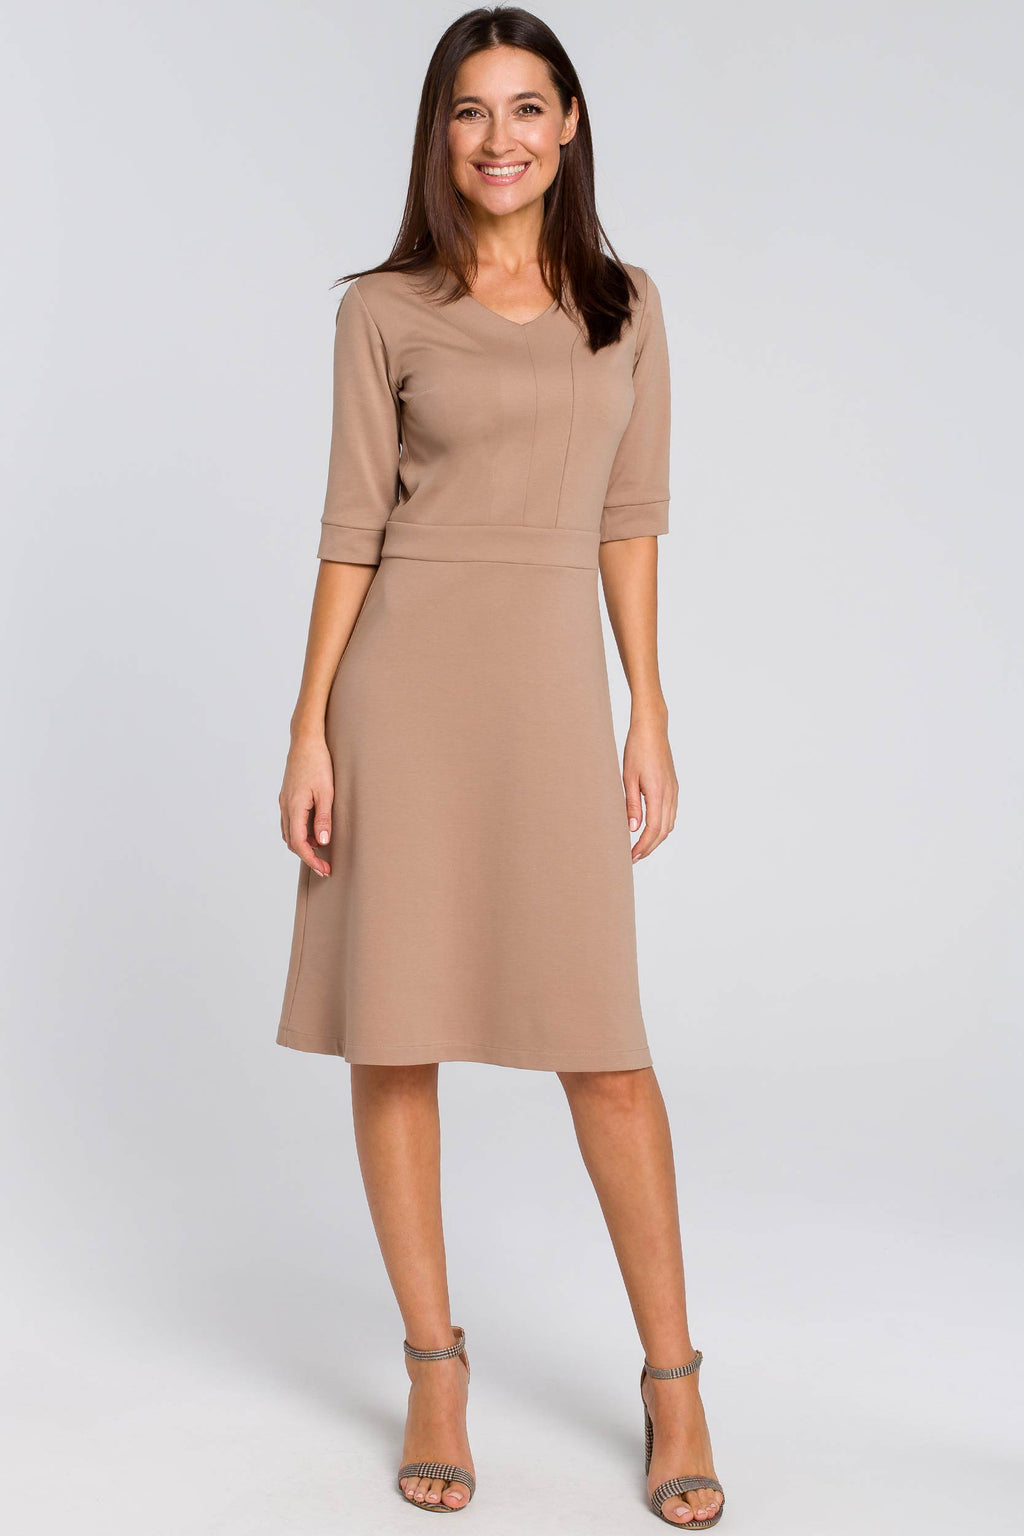 Beige Cotton Shift Dress With Elbow Sleeves - So Chic Boutique